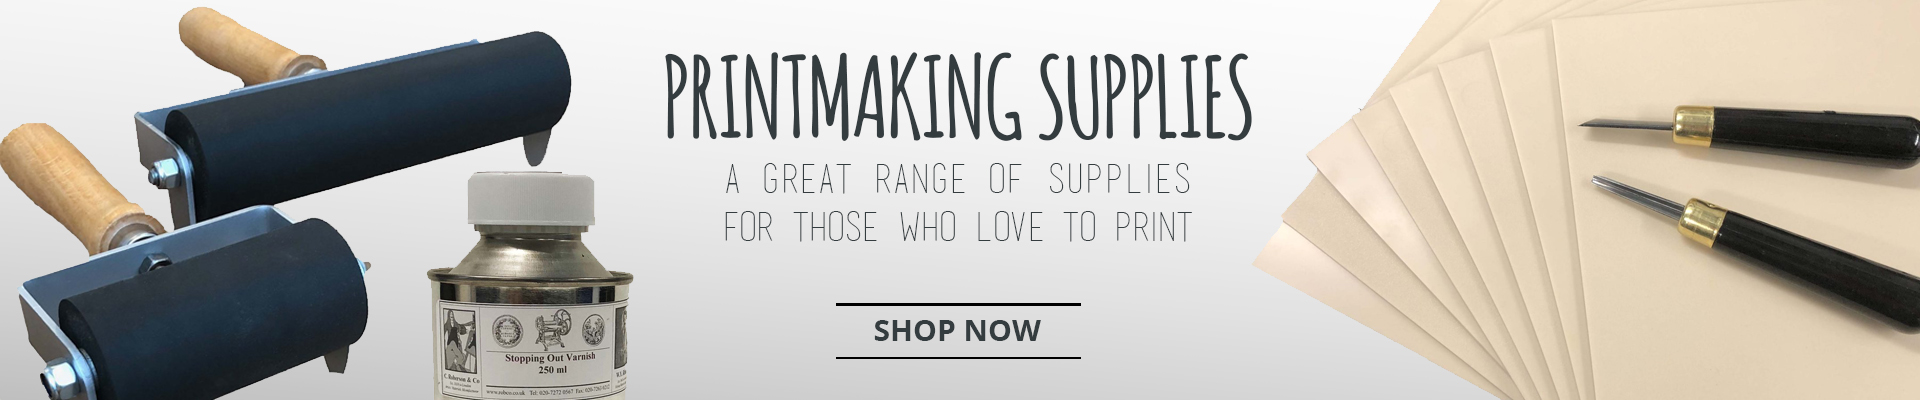 Printmaking supplies